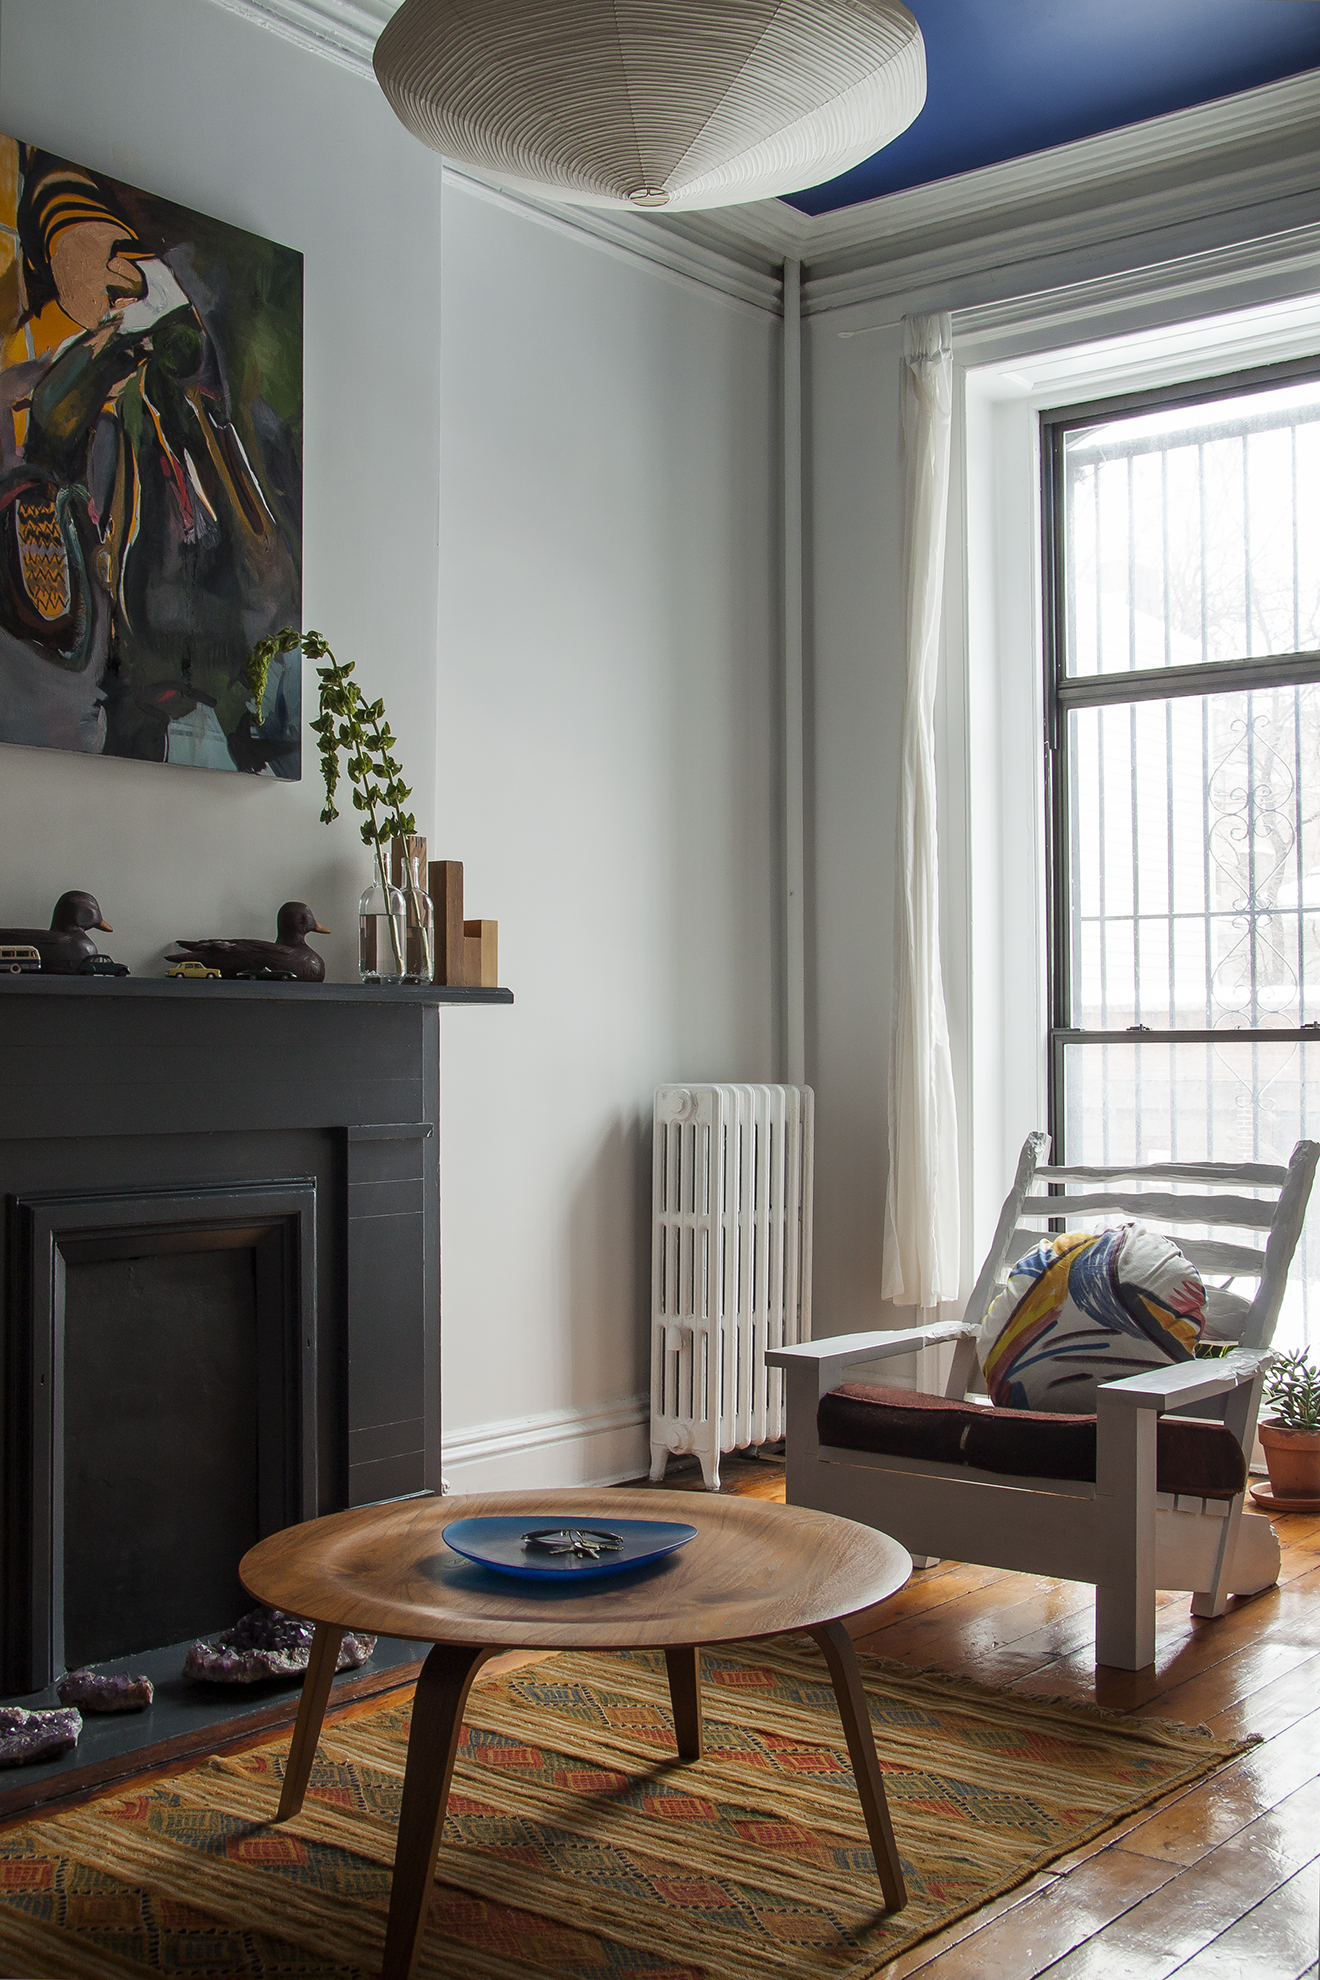 Townhouse Transformation: Breathing New Life Into an Old Brownstone